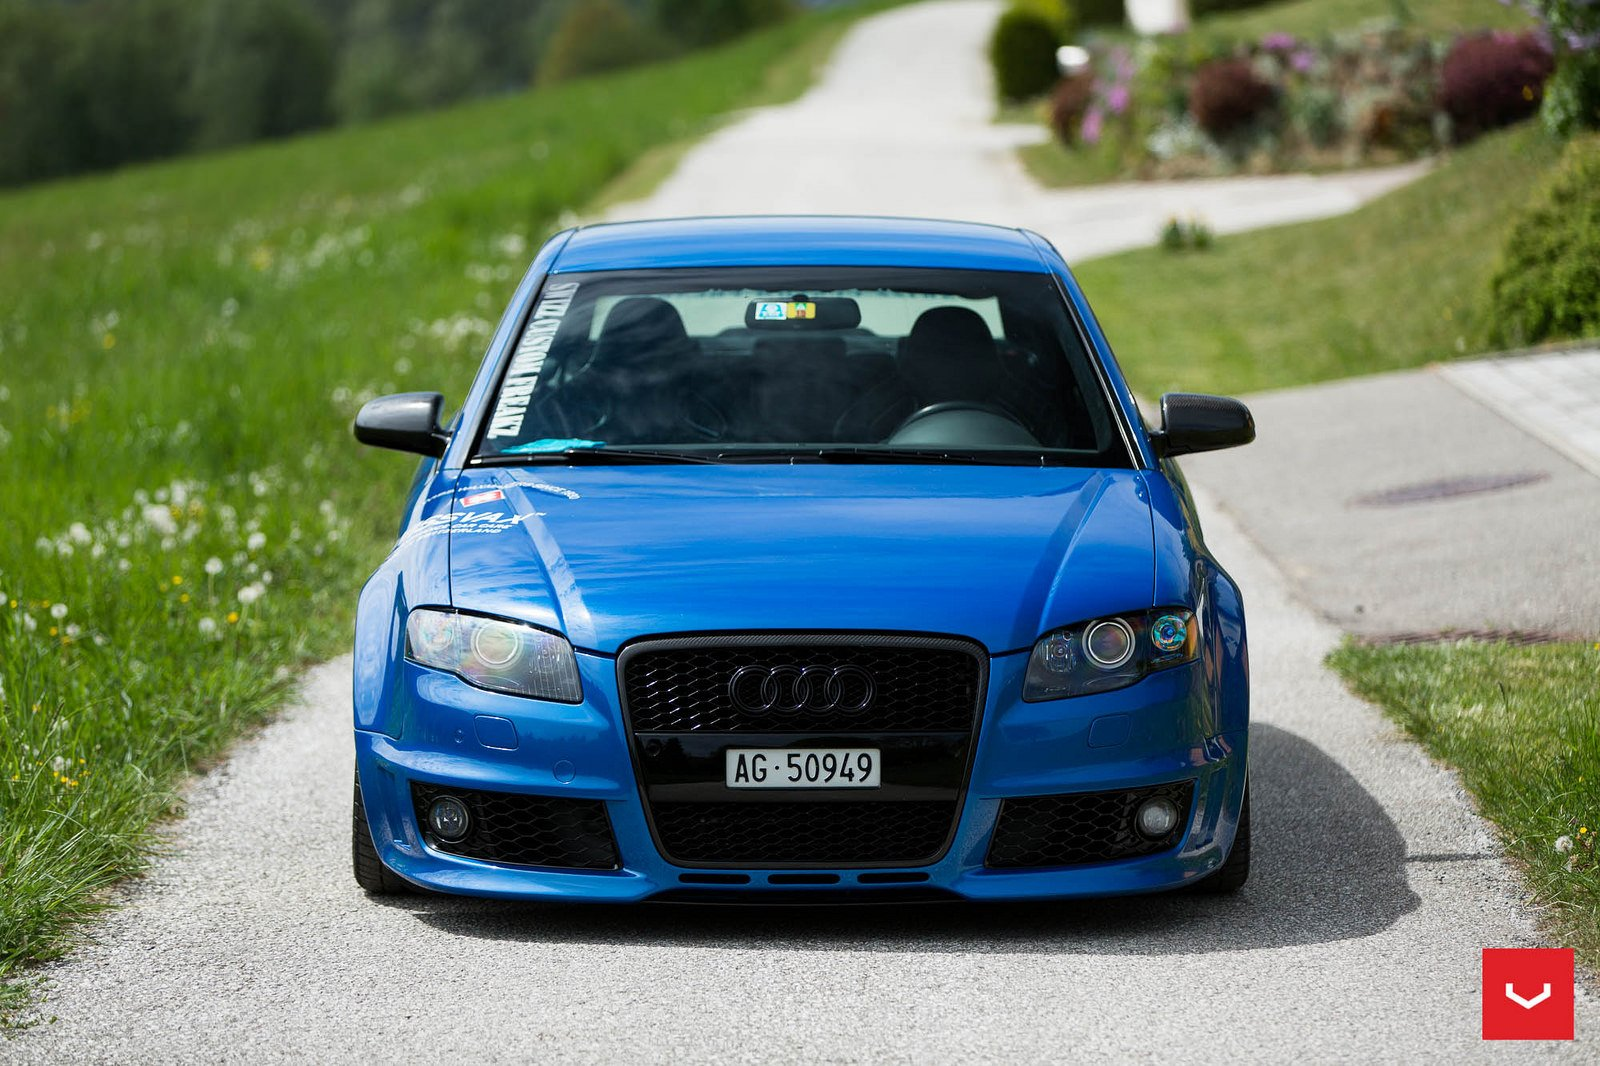 Audi Rs4 Vossen Wheels Cars Blue Wallpaper 1600x1066